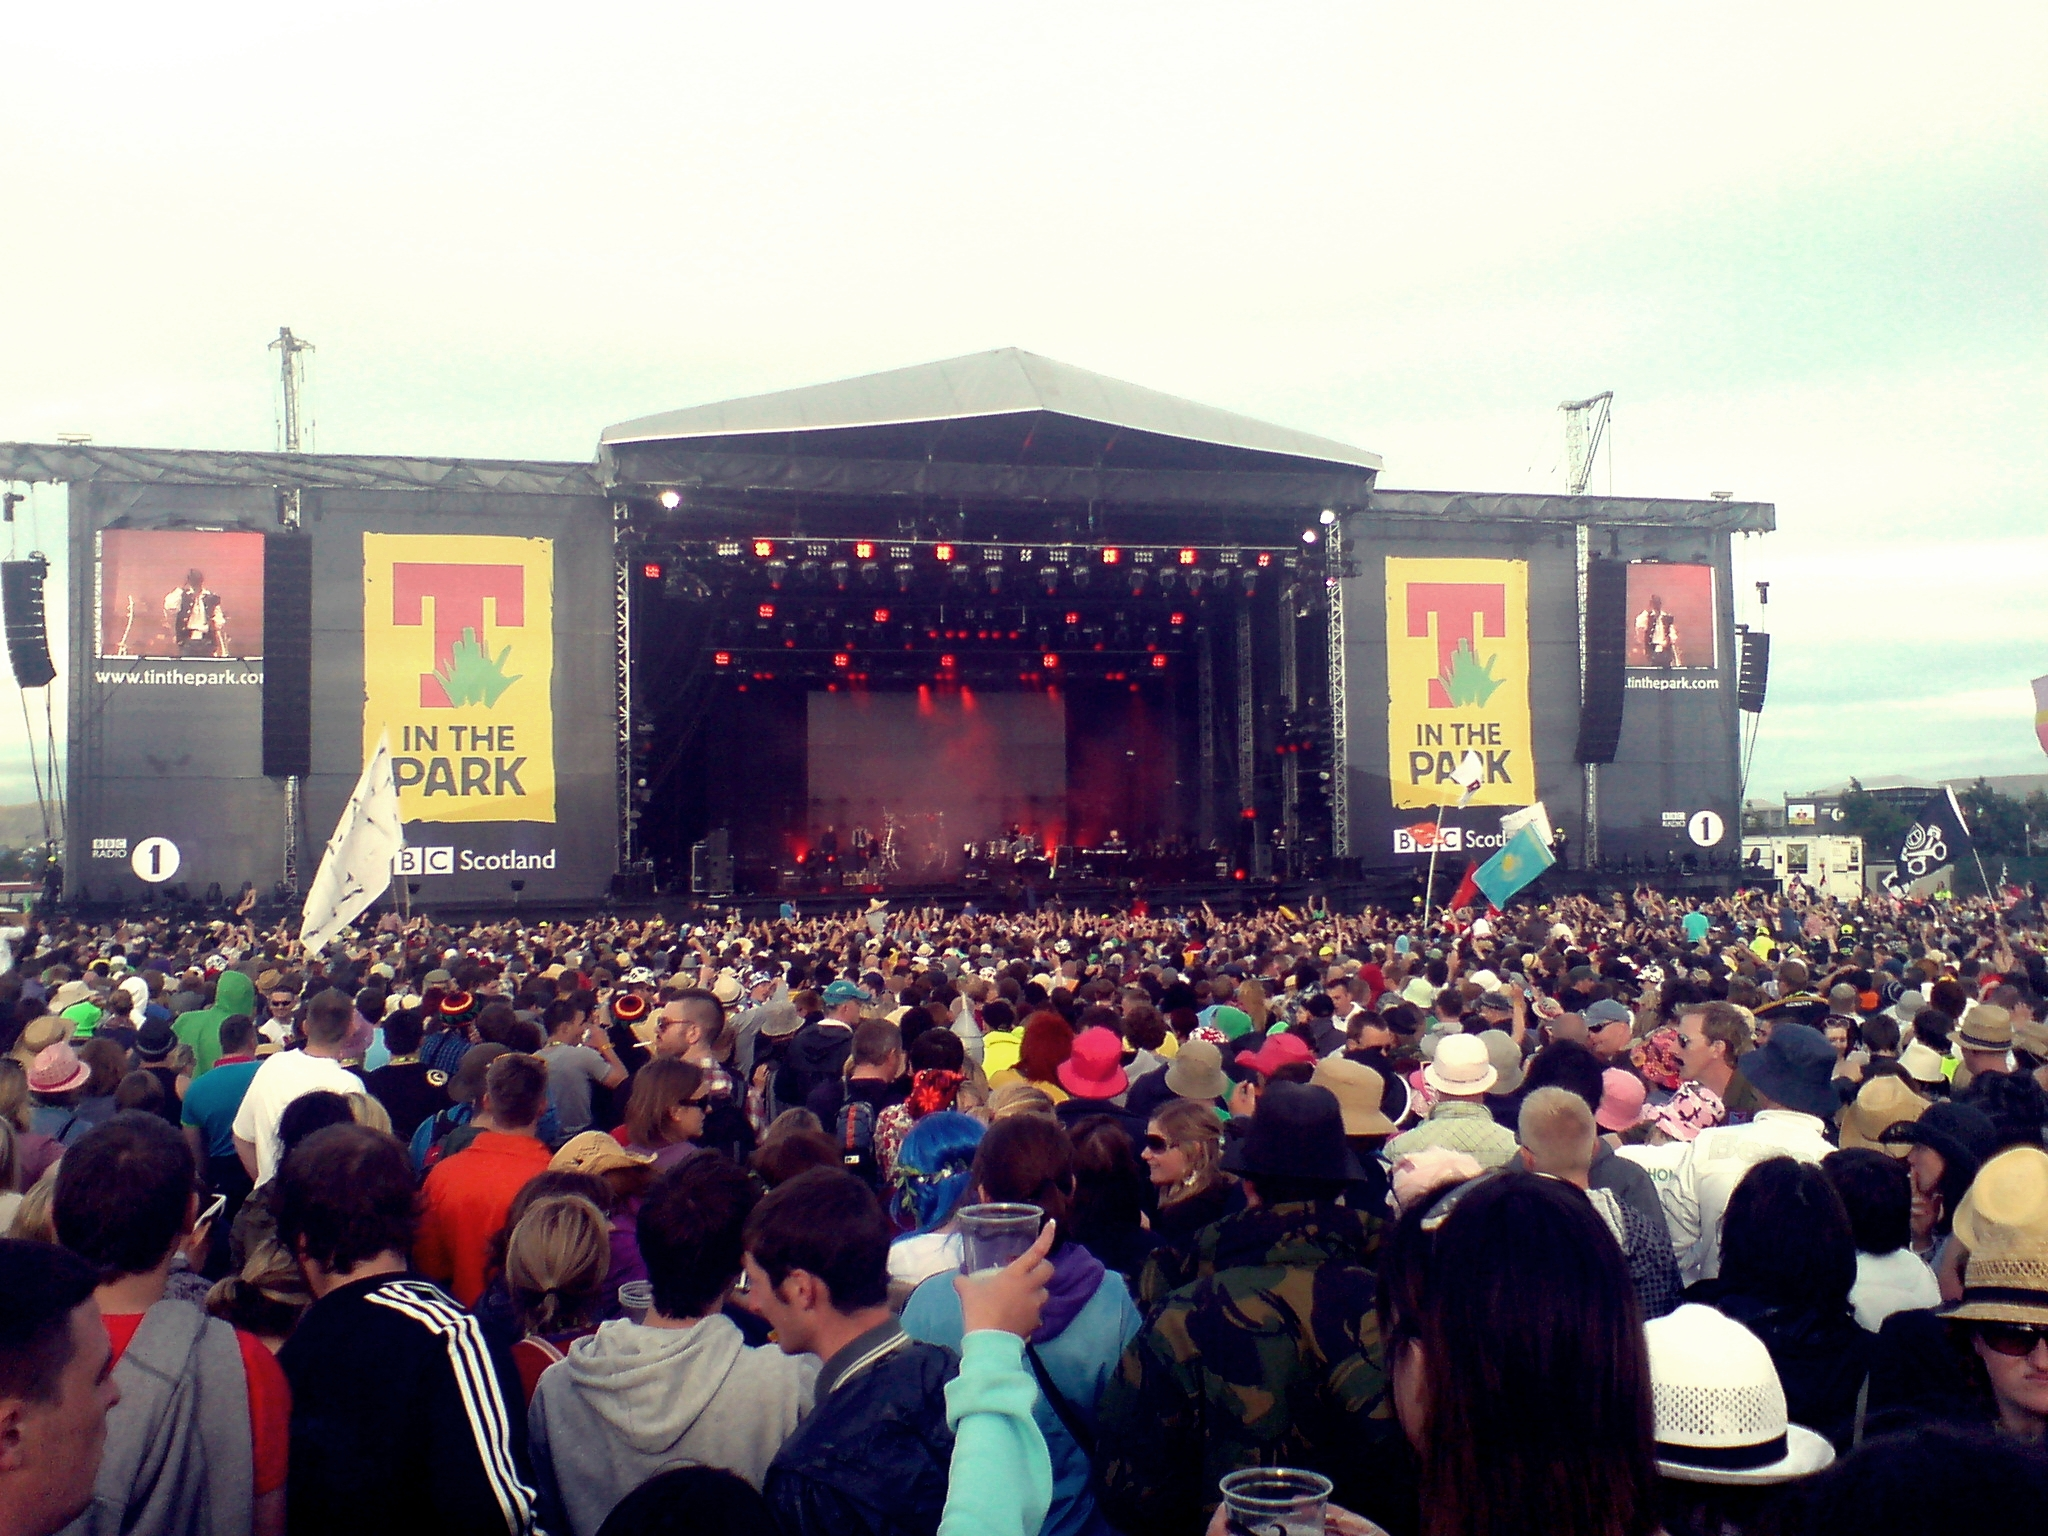 T_in_the_Park_Festival_2010